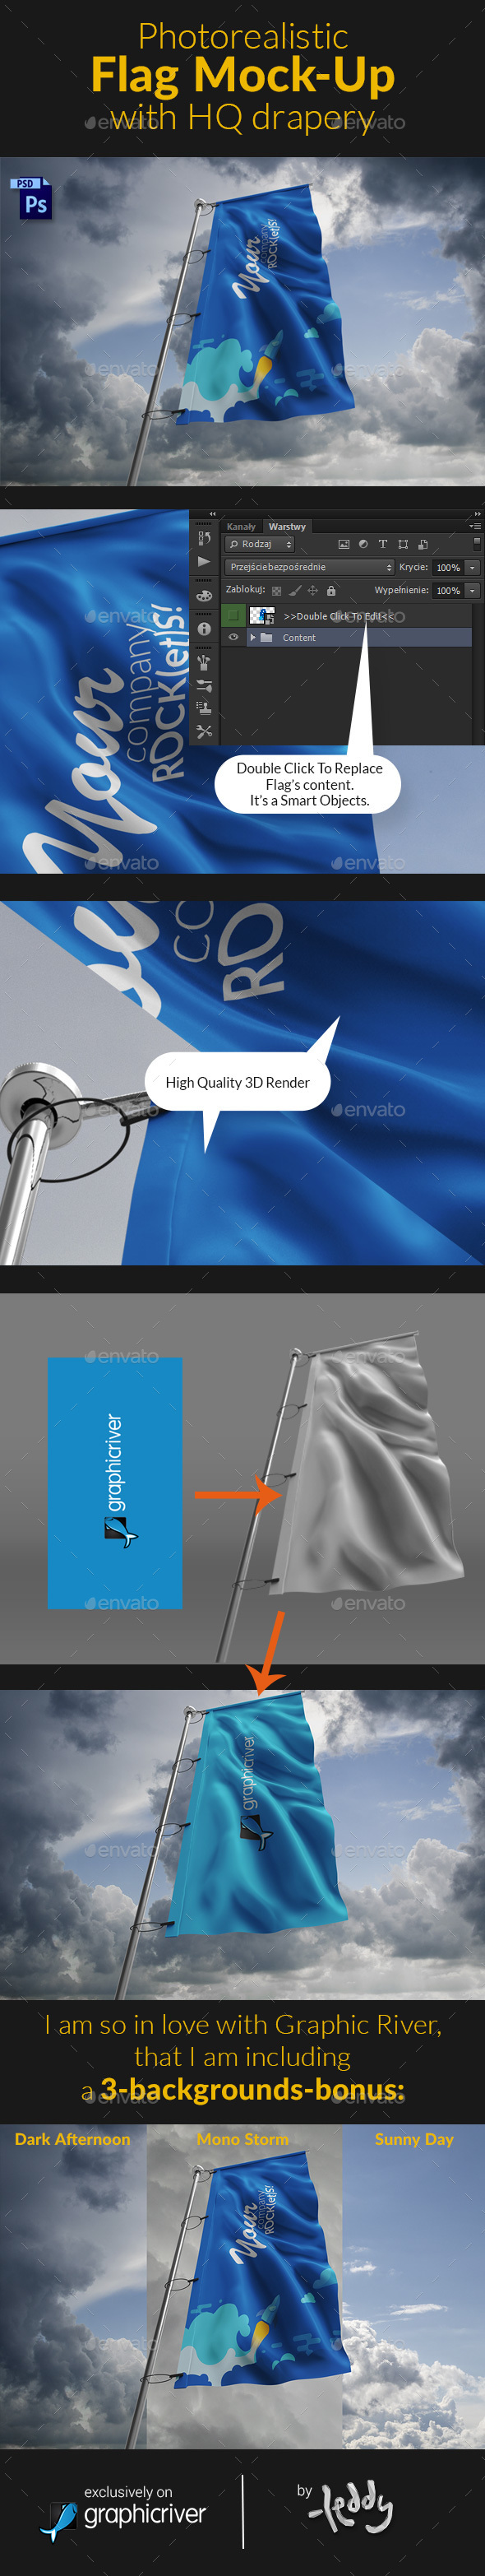 Photorealistic Flag Mock-Up with HQ drapery - Product Mock-Ups Graphics